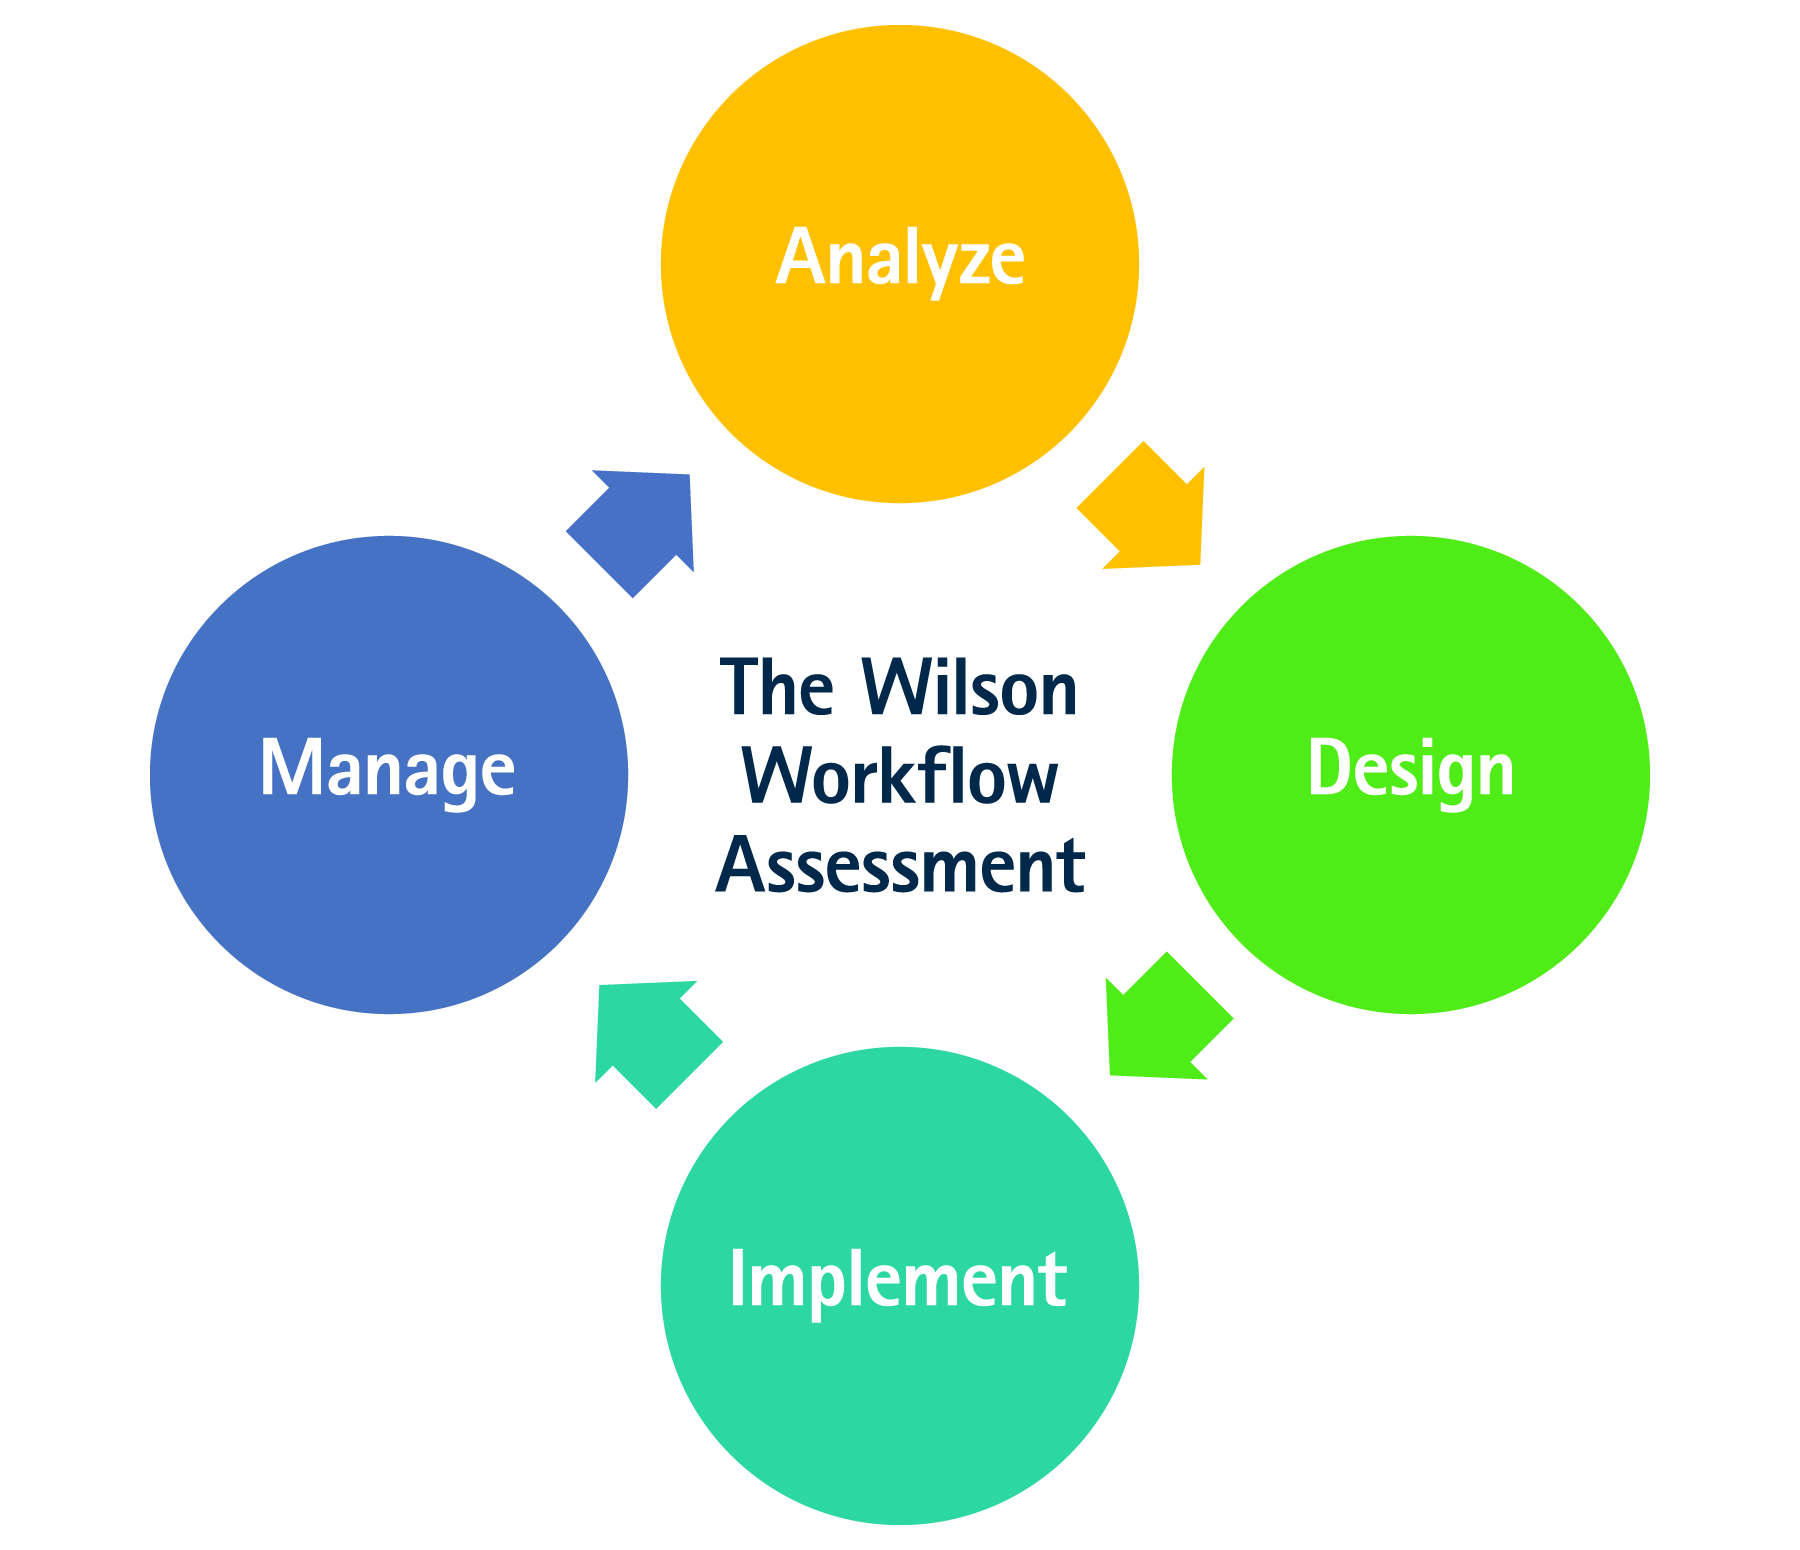 The Wilson Group Workflow Assessment